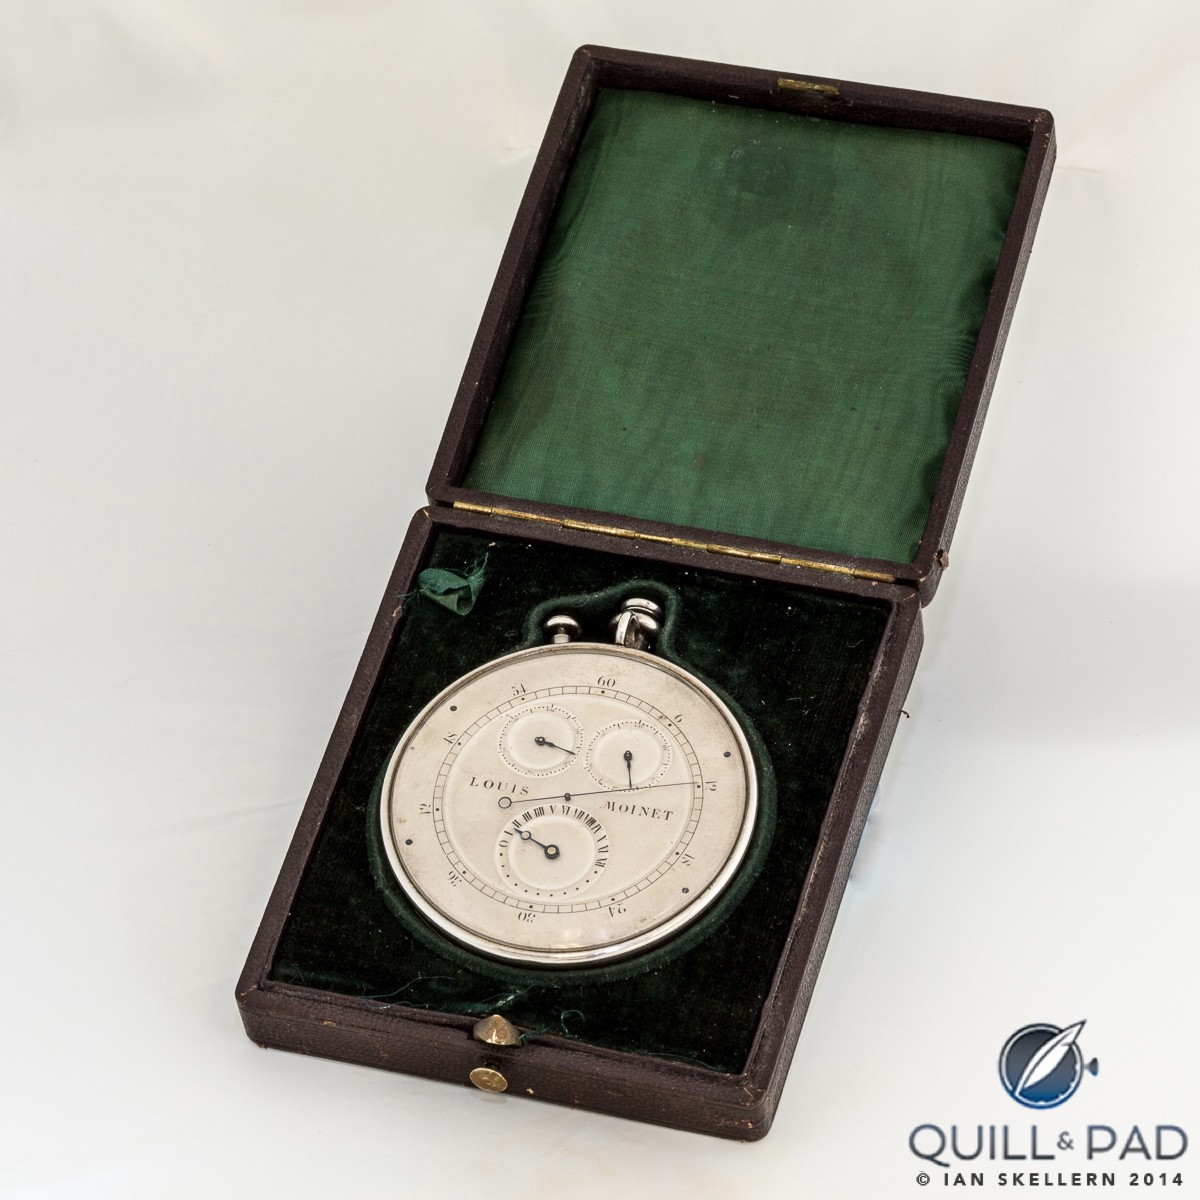 Louis Moinet Compteur de Tierces: finished in 1817, it is the world's first chronograph